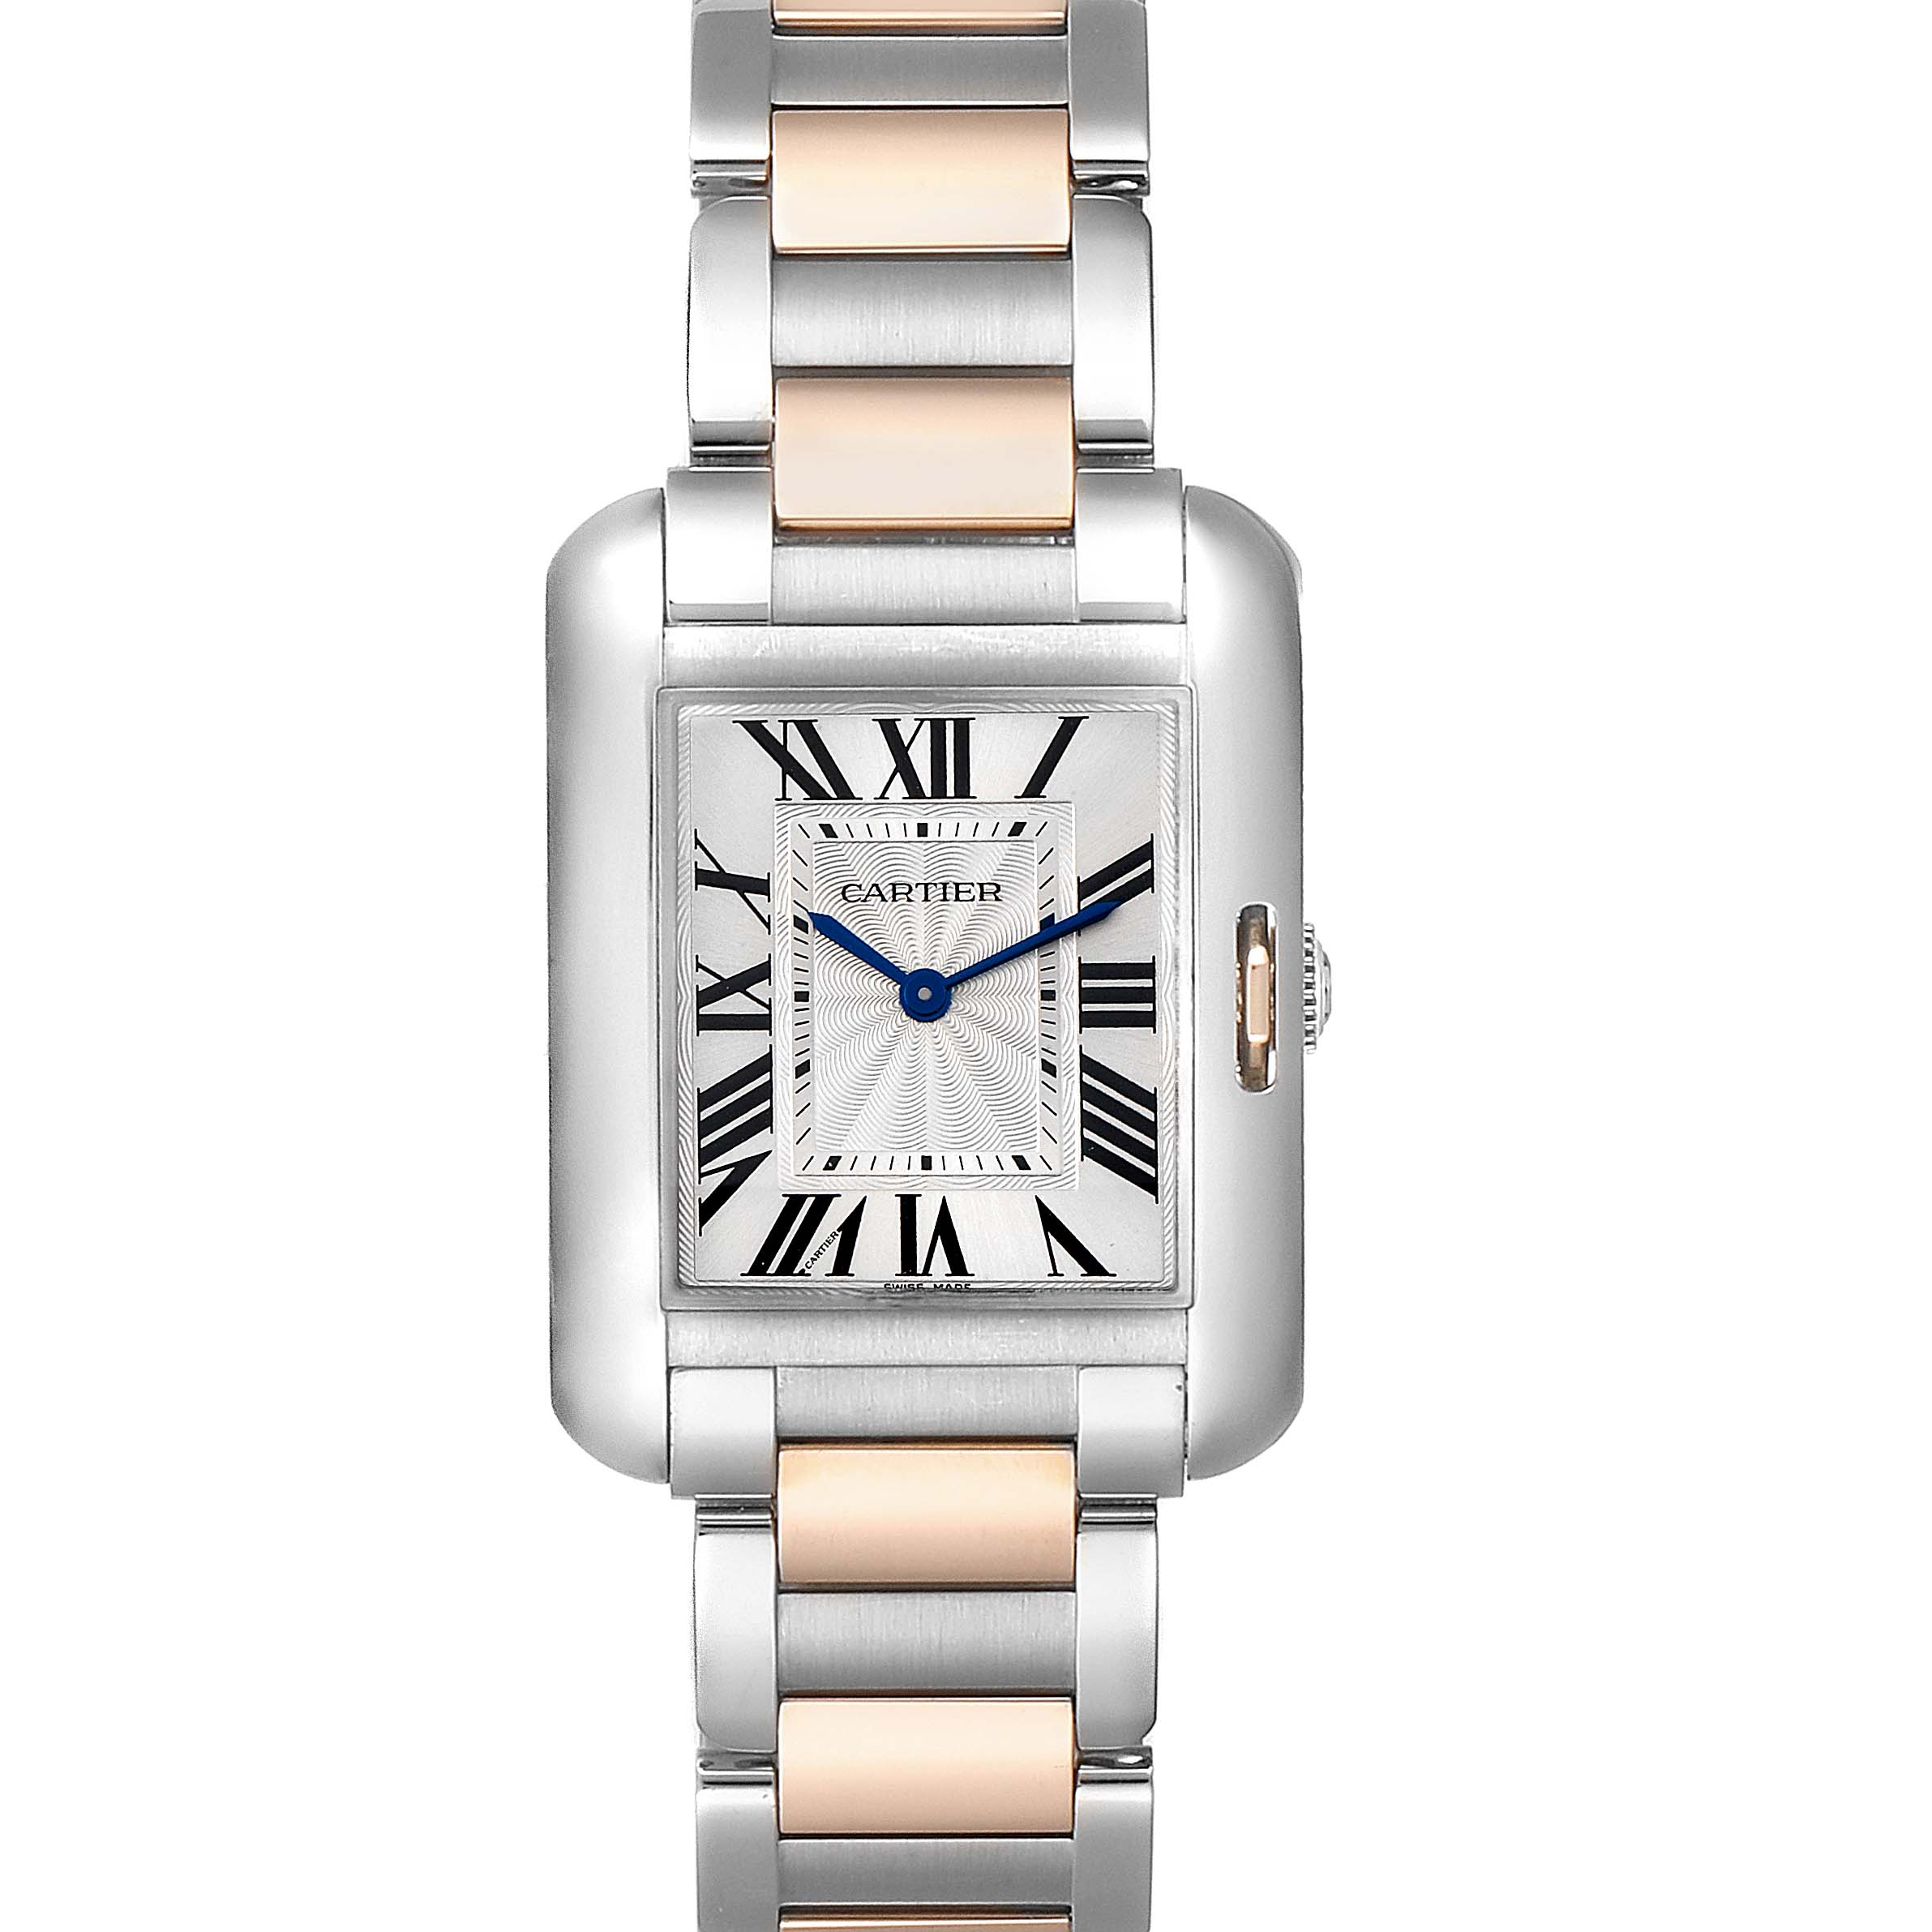 Cartier Tank Anglaise Medium Steel Rose Gold Watch WT100032 SwissWatchExpo